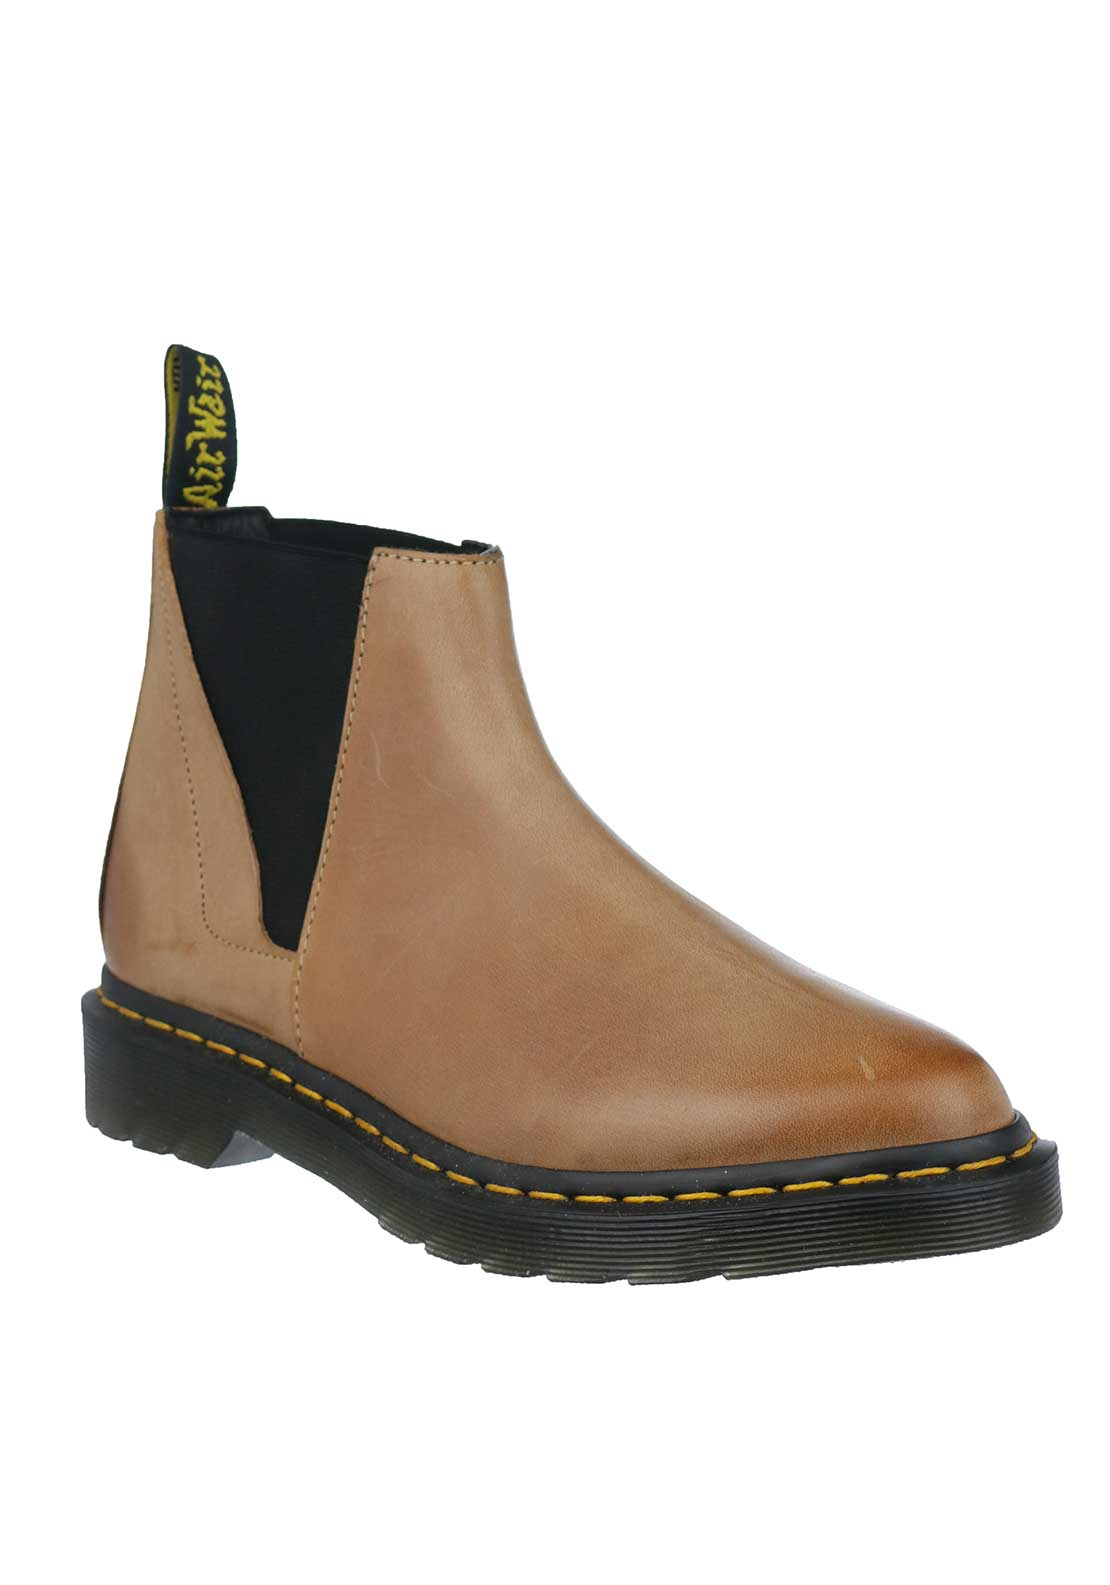 Dr. Martens Womens Bianca Leather Boots, Brown